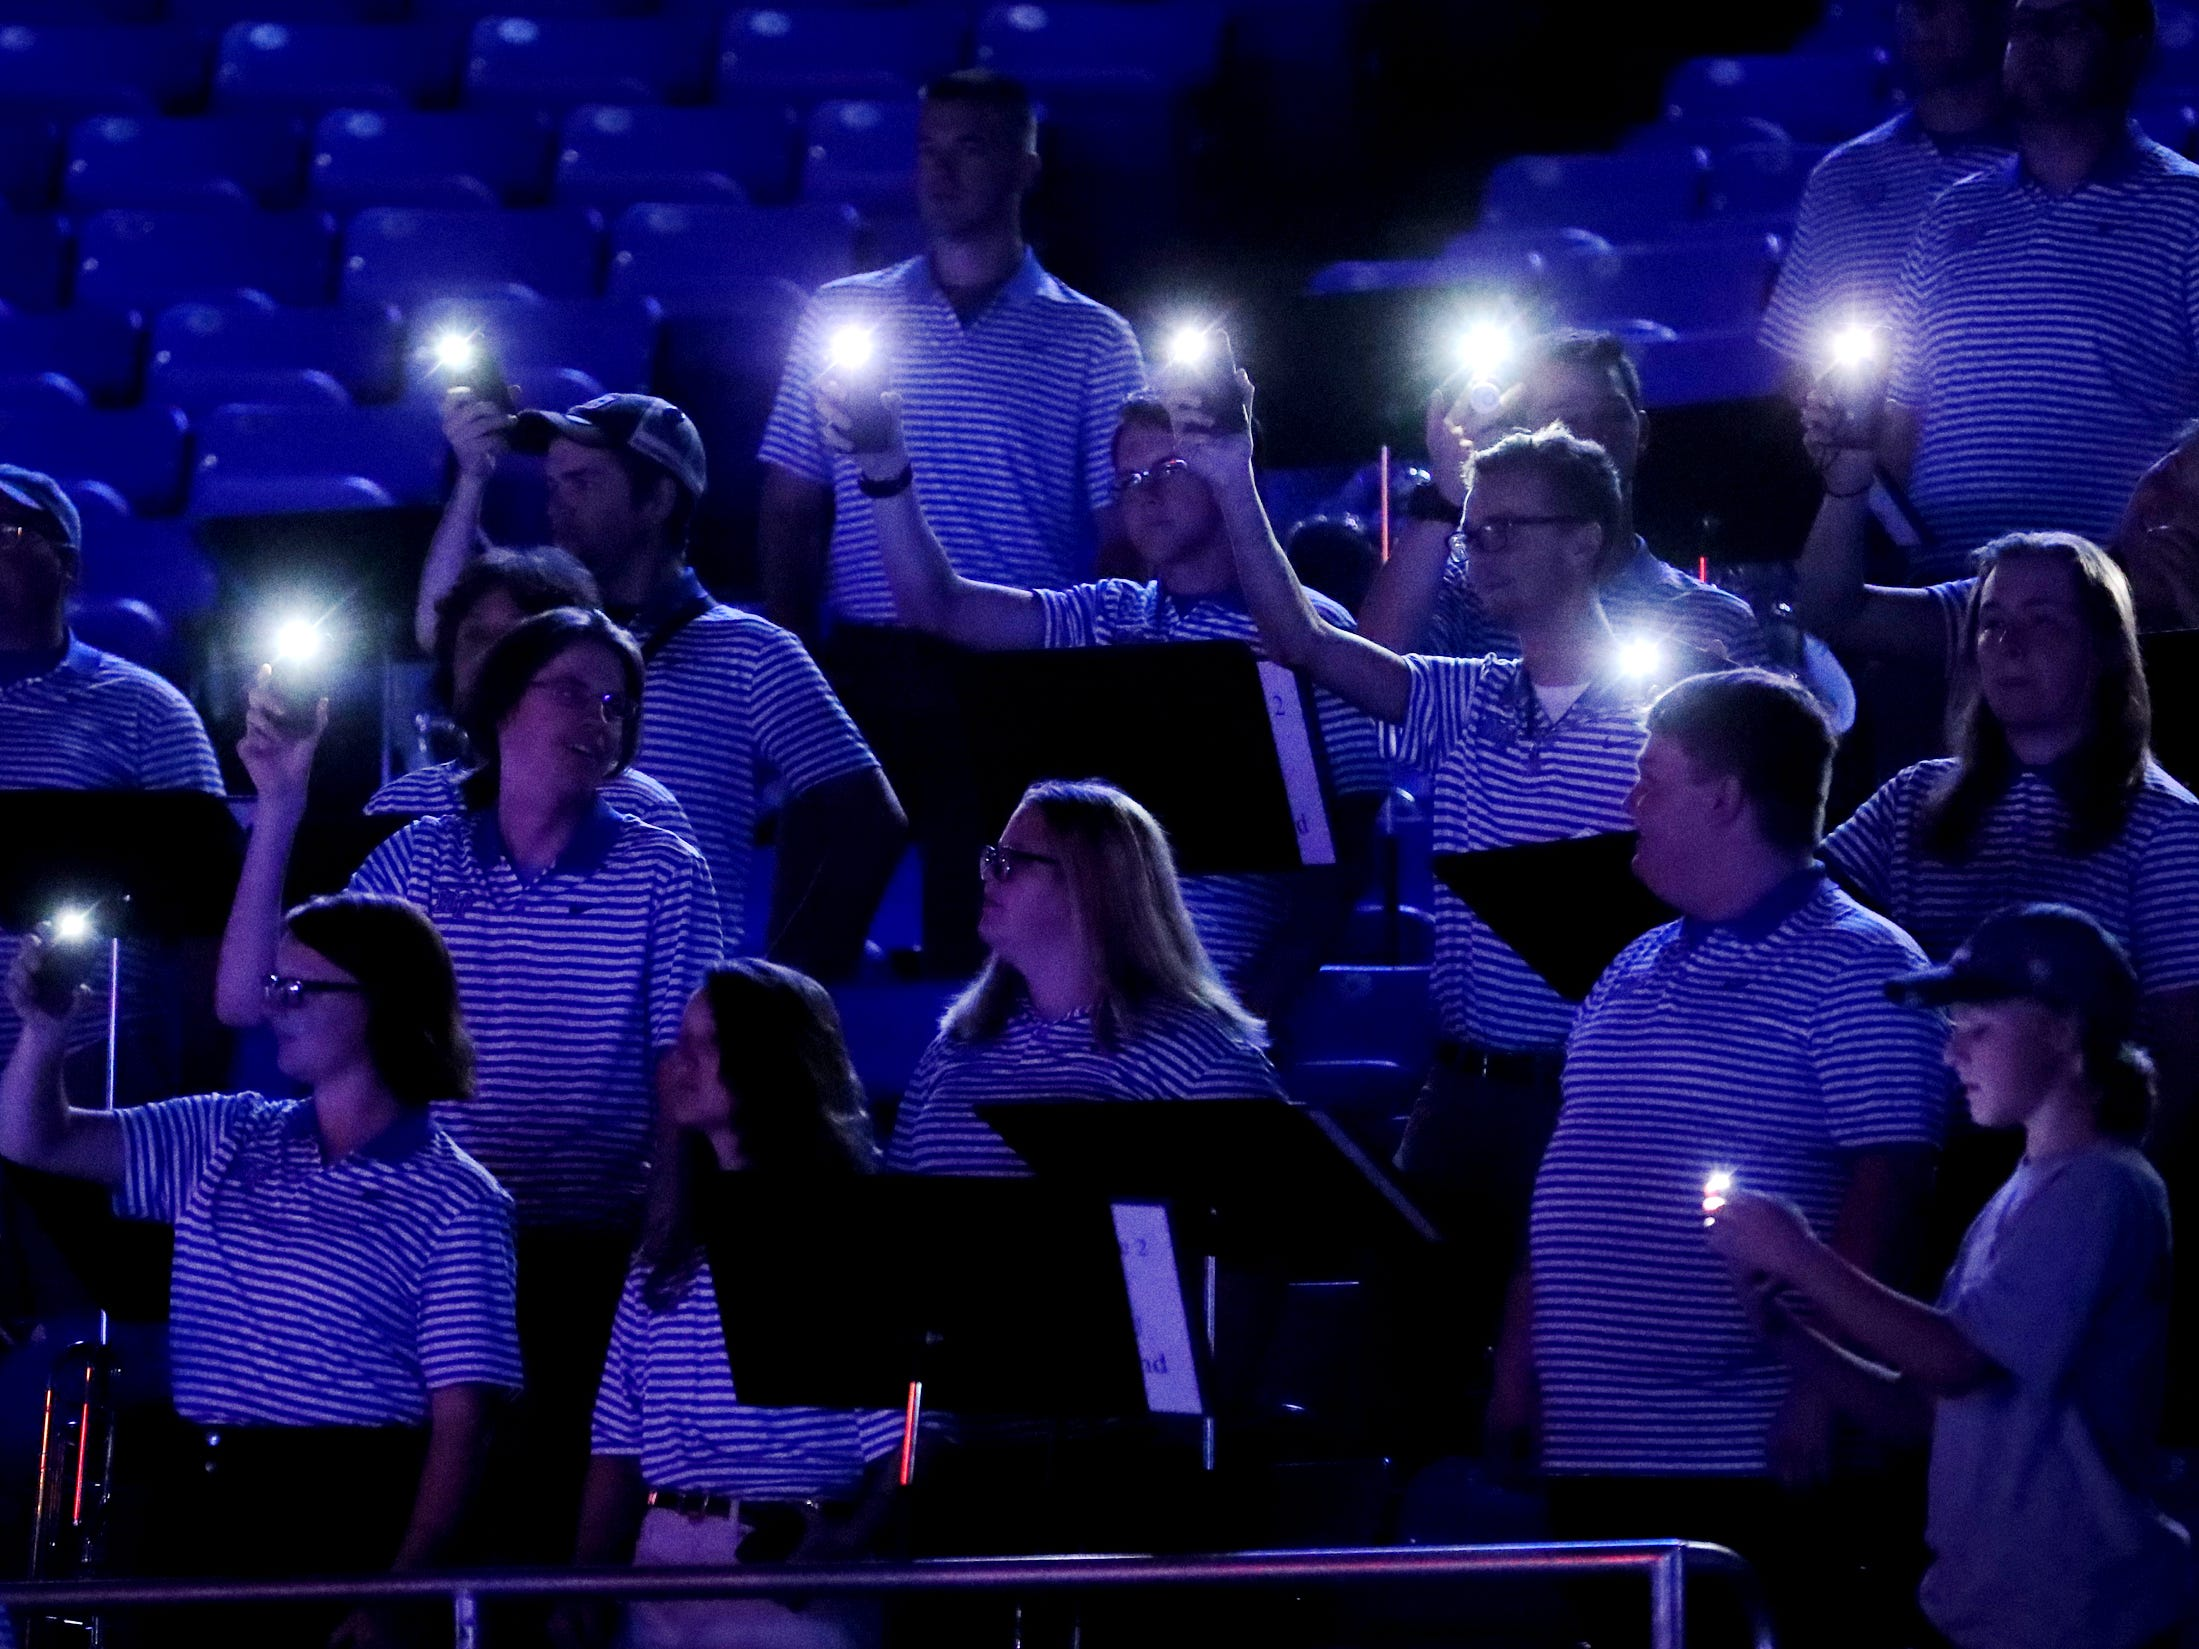 MTSU band members shine their phone lights before the MTSU players are announced before the game against Lees-McRae on Tuesday, Nov. 6, 2018.